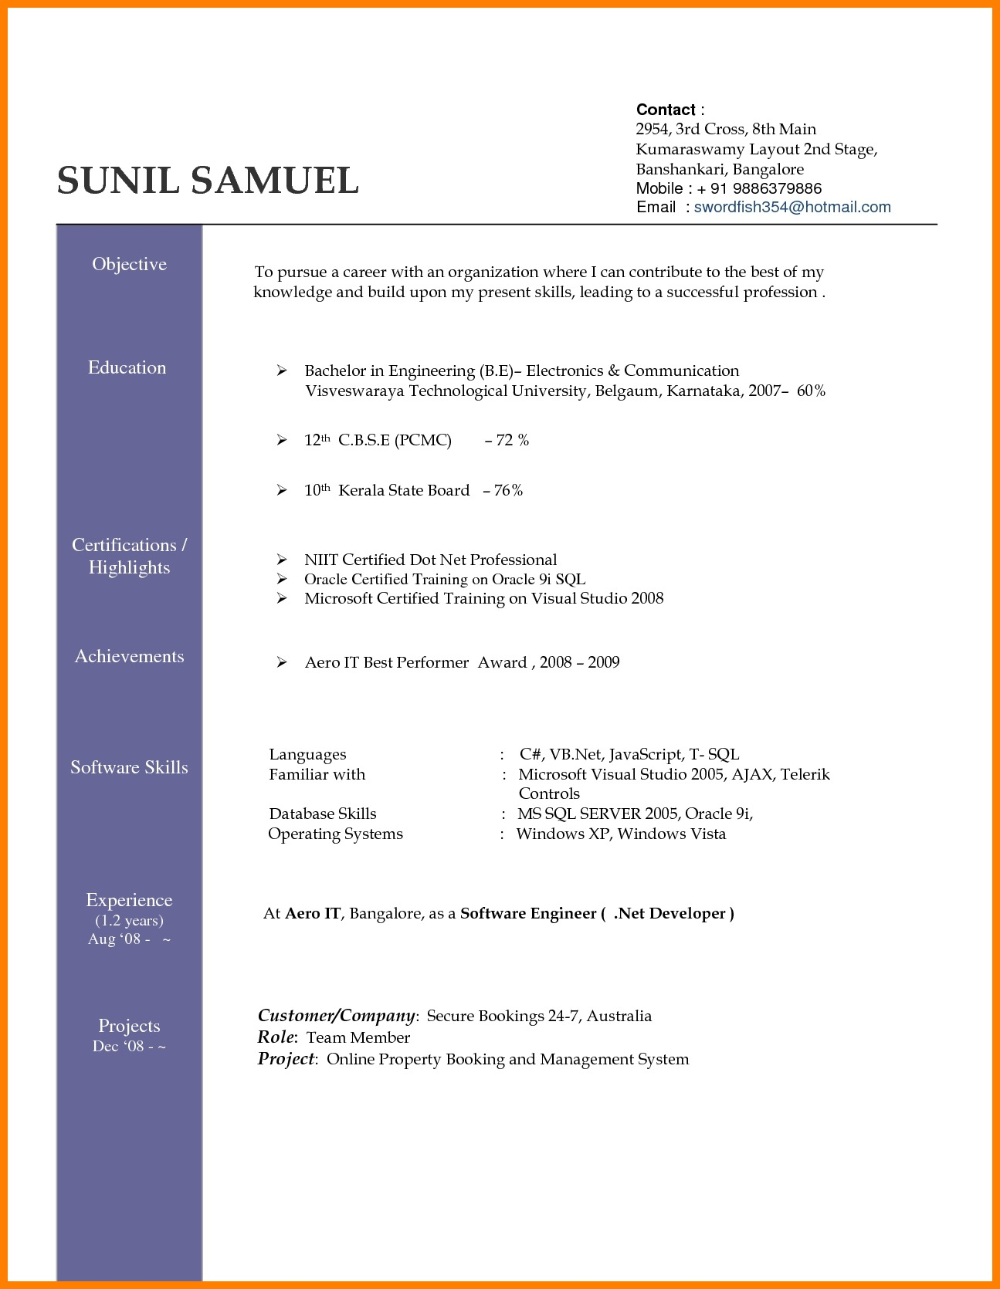 cv templates doc free (1) example sales lead resume template chef